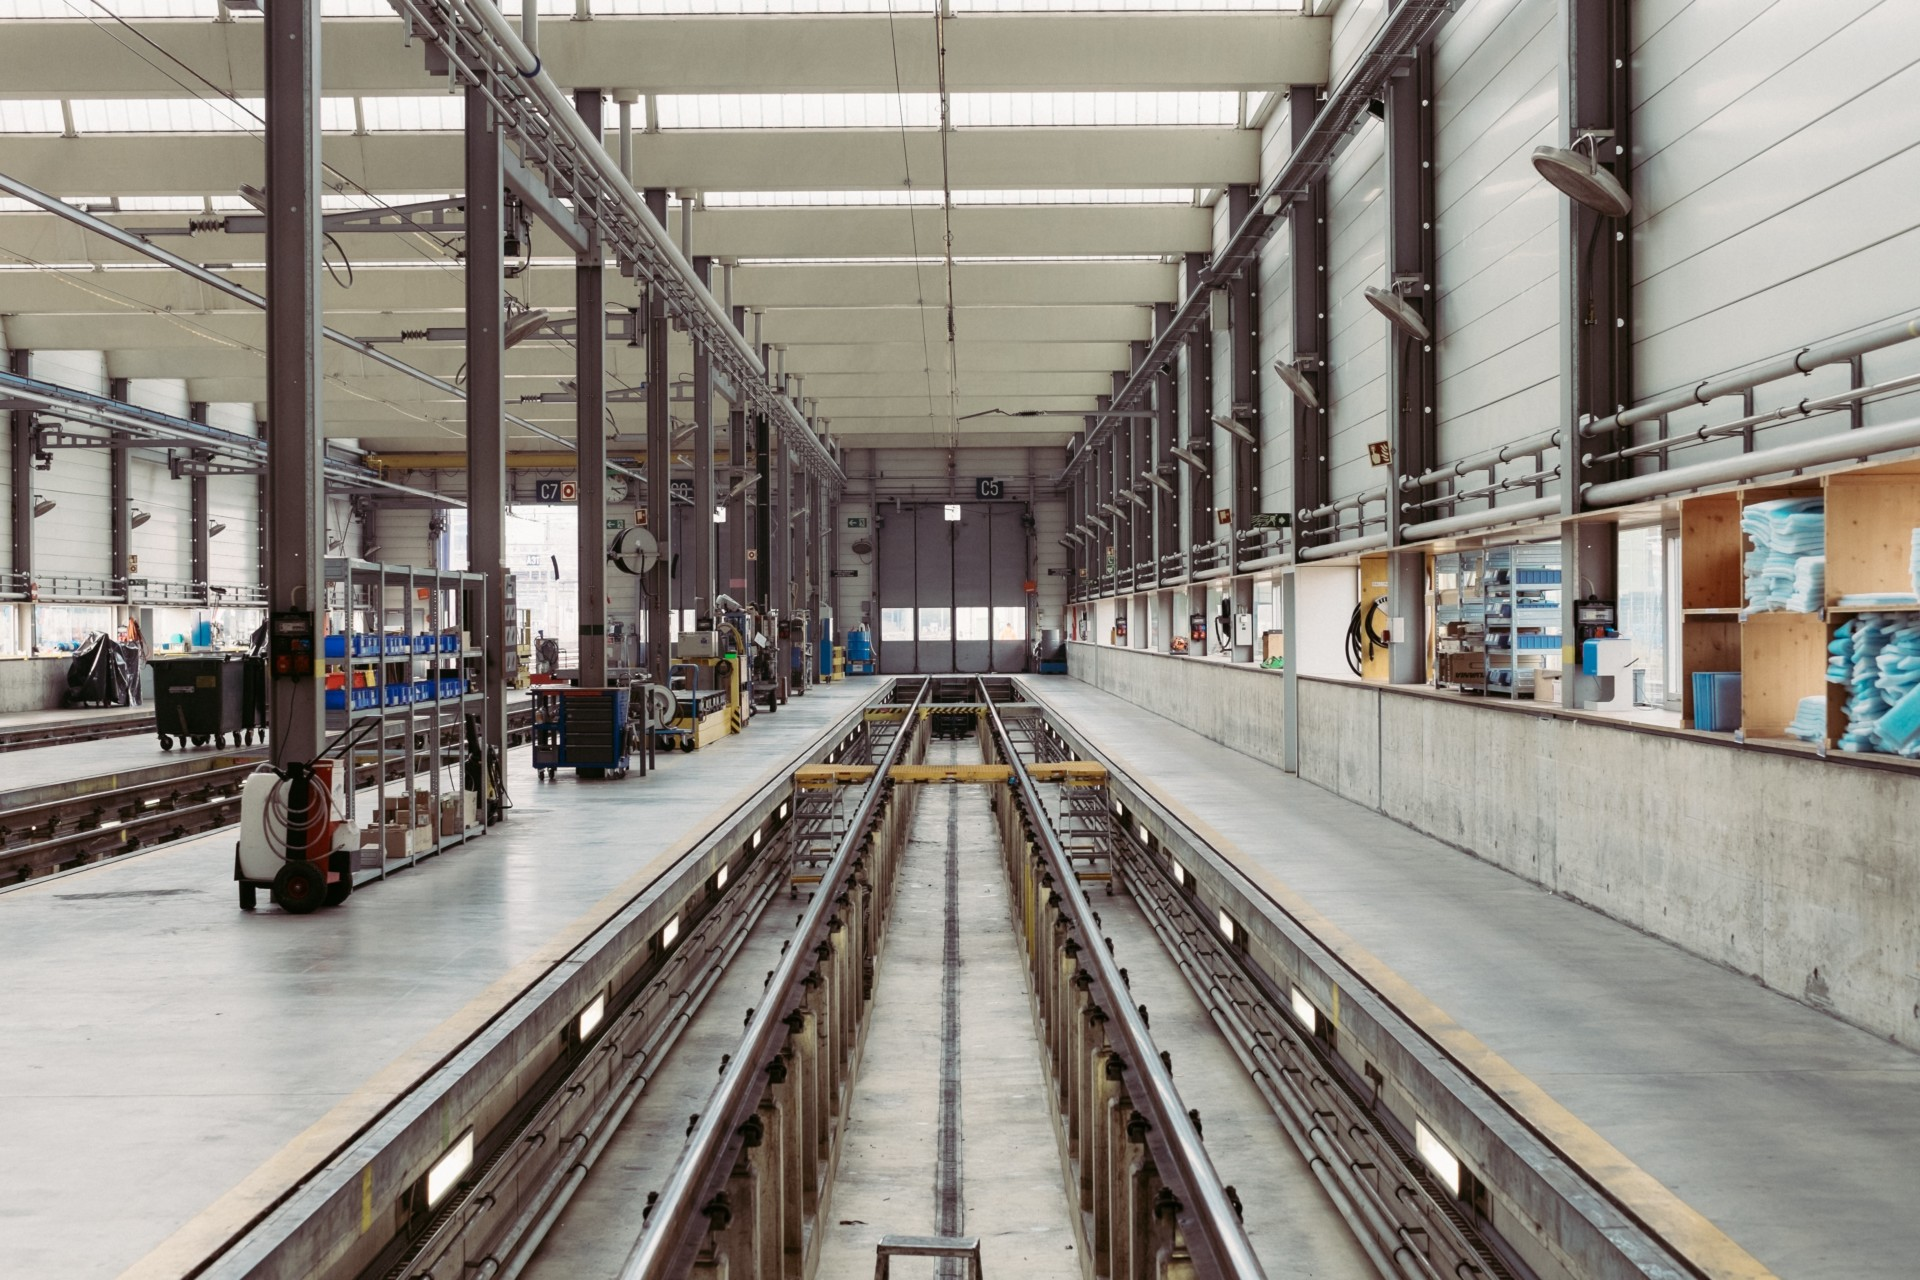 Spacious and clean warehouse